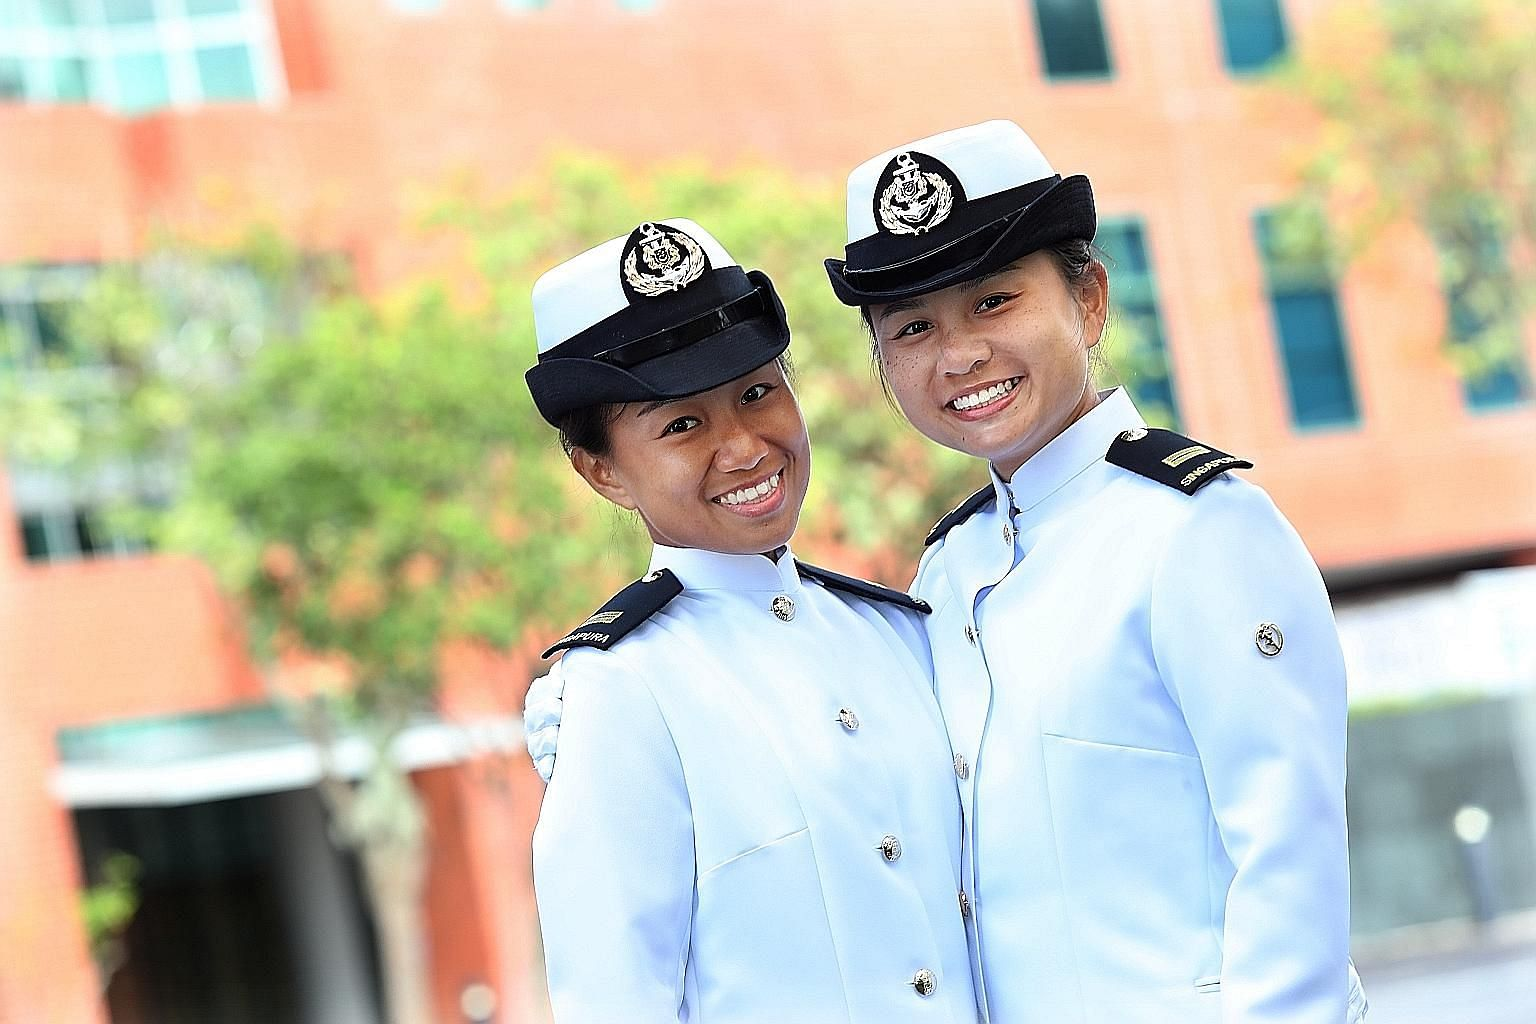 Lieutenant Emily Kwek Zhen Chun (left) with her younger sister, Lieutenant Felicia Kwek Zhen Yi. The former graduated as the top cadet in her cohort.